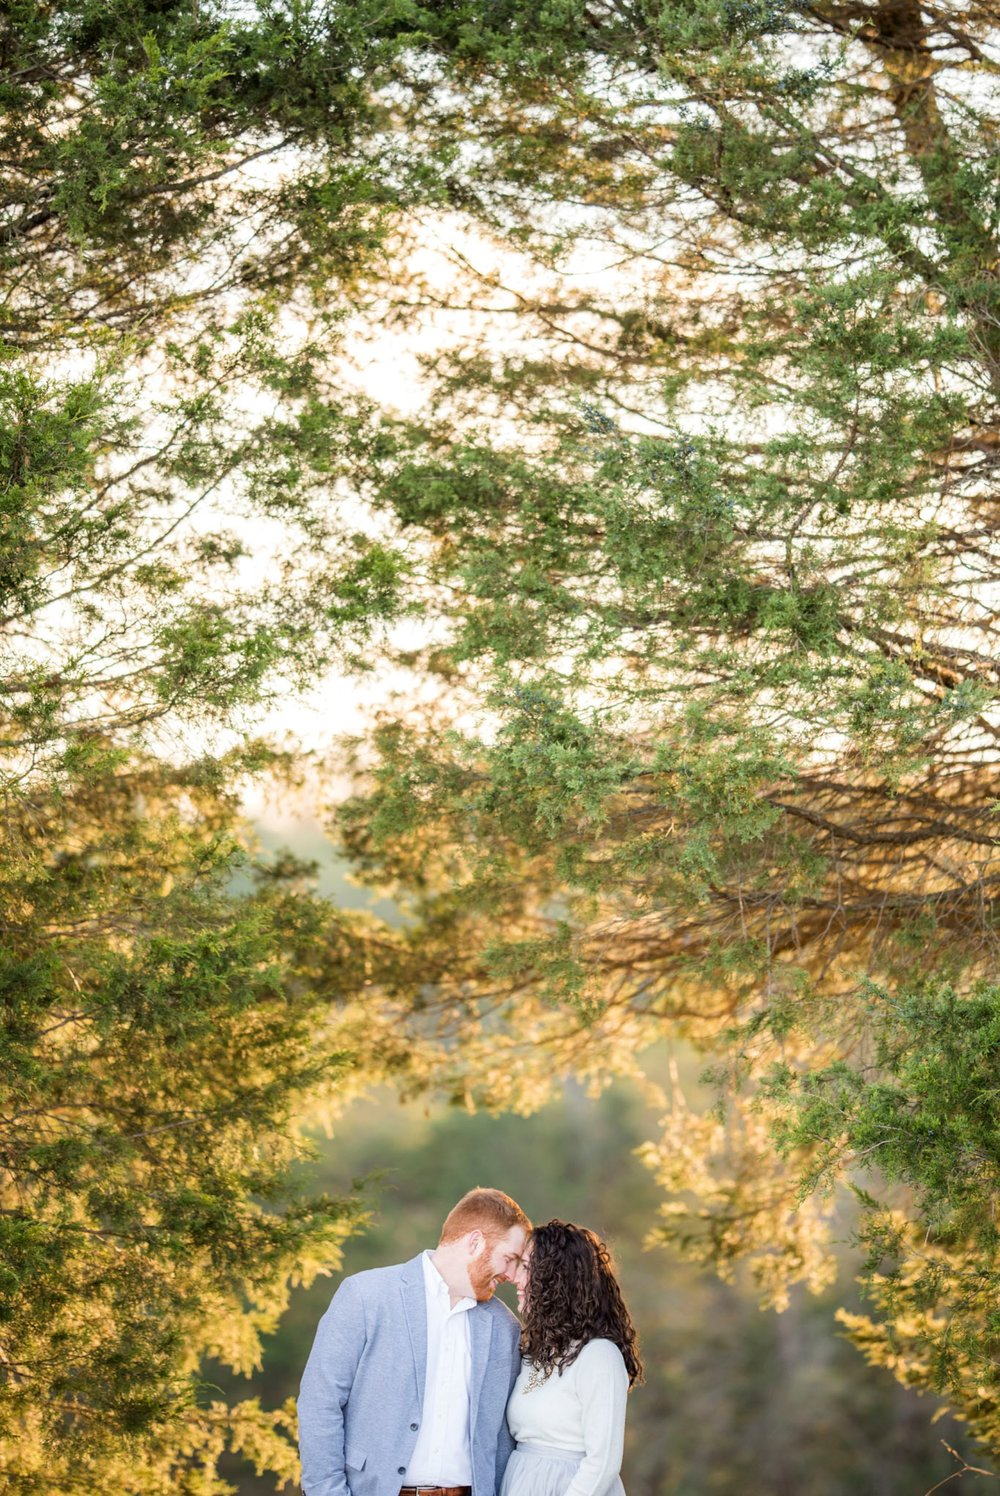 SorellaFarms_EngagementSession_VirginiaweddingPhotographer 43.jpg